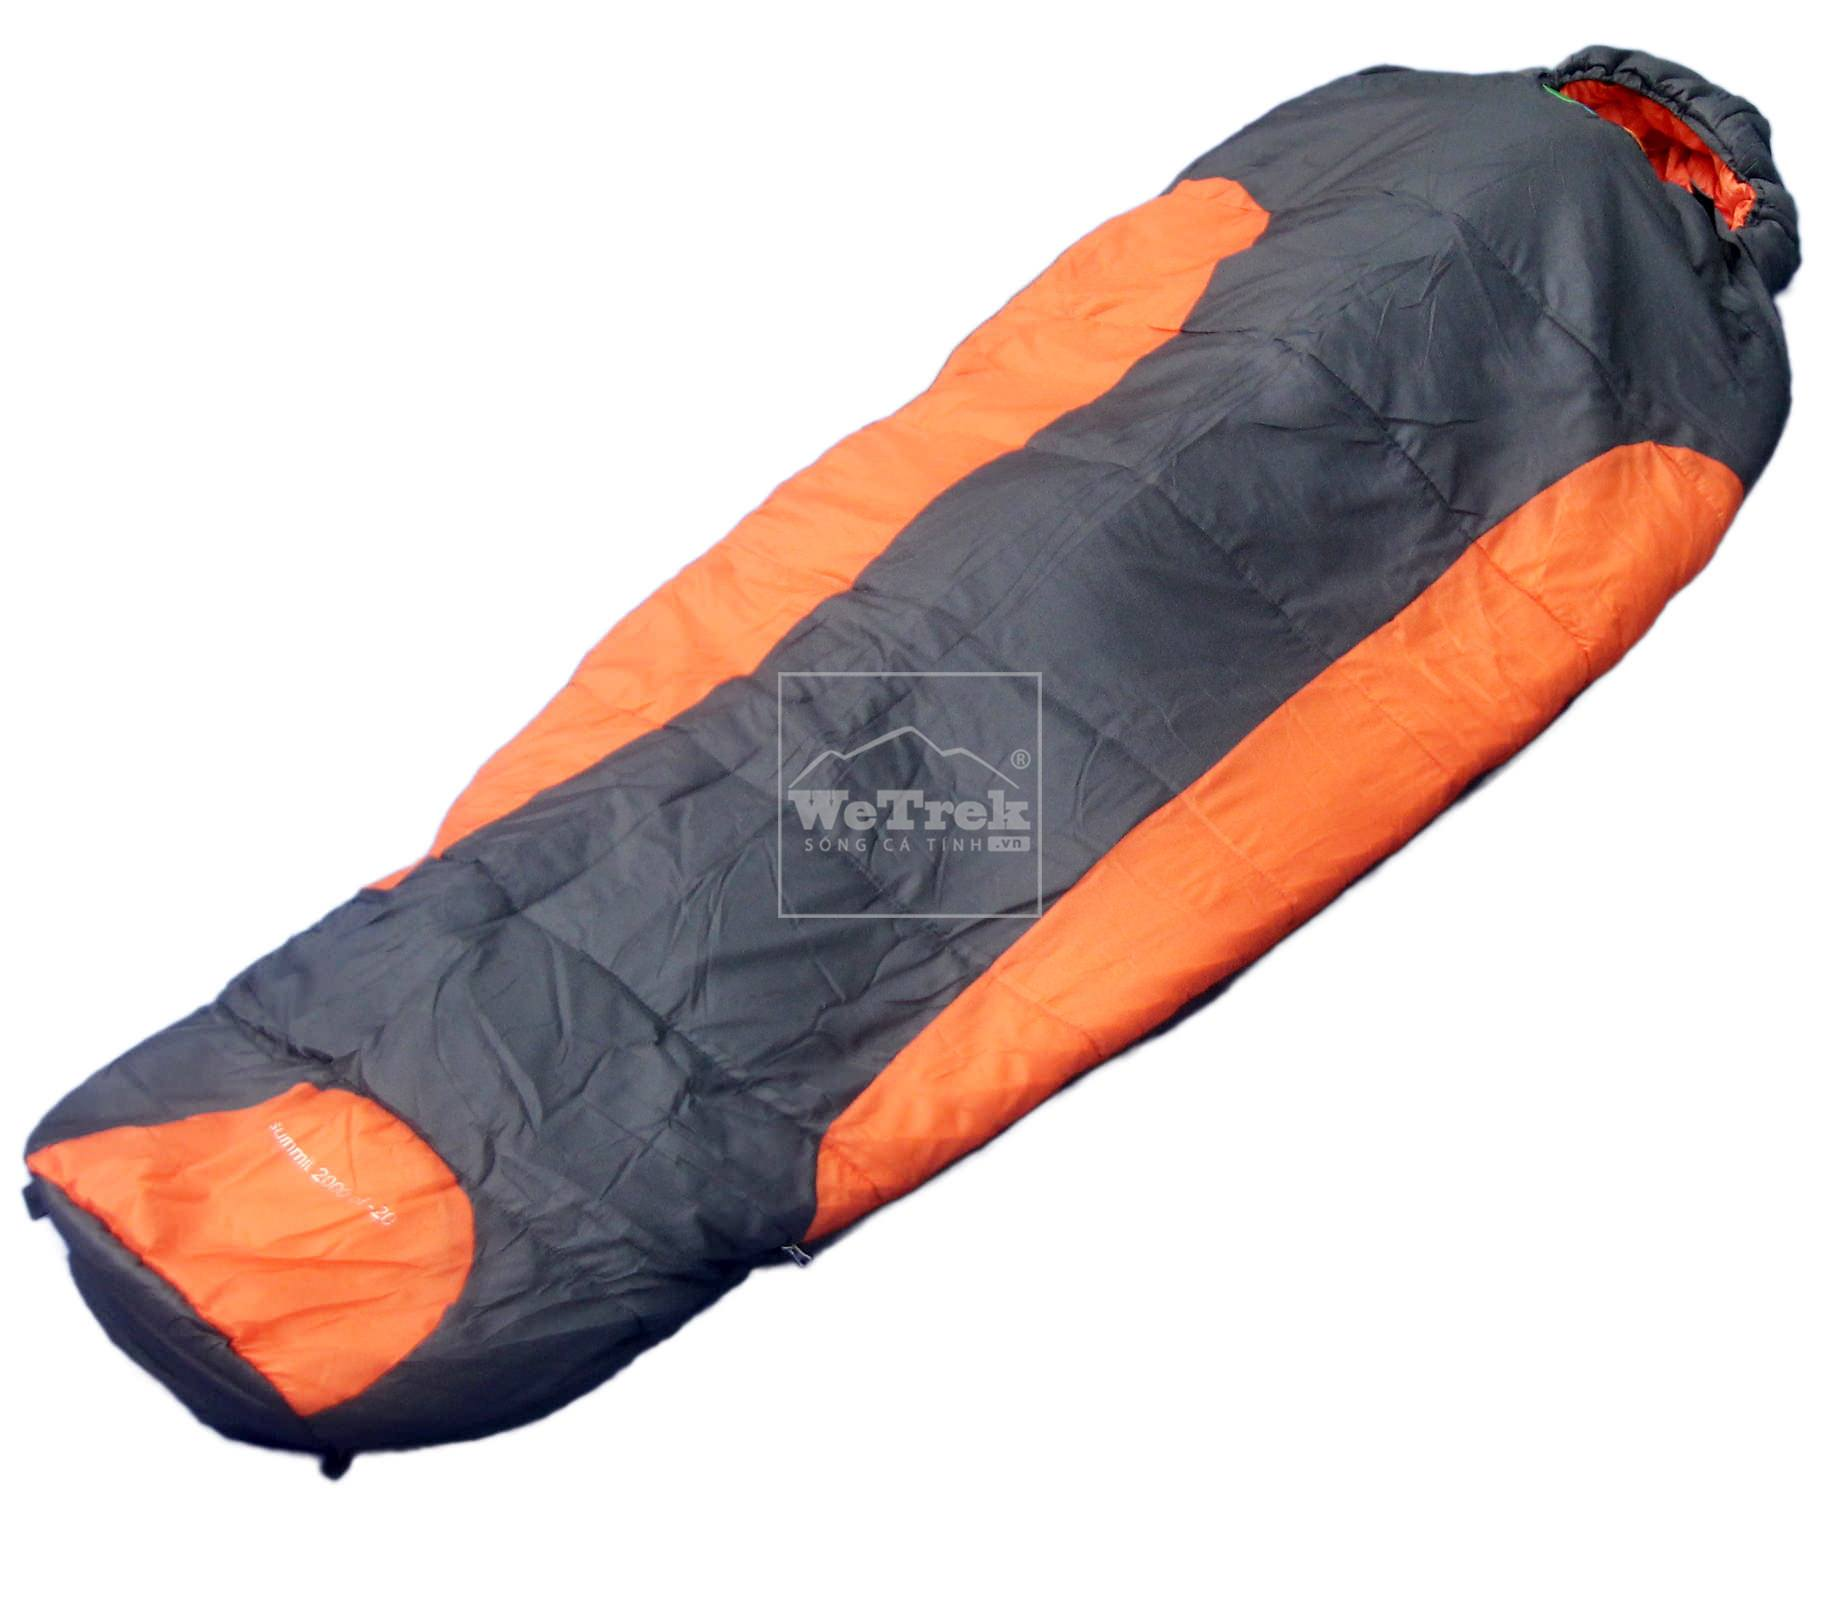 tui-ngu-mua-dong-2-lop-ryder-2-layers-mummy-sleeping-bag-d1006-1210-wetrek.vn